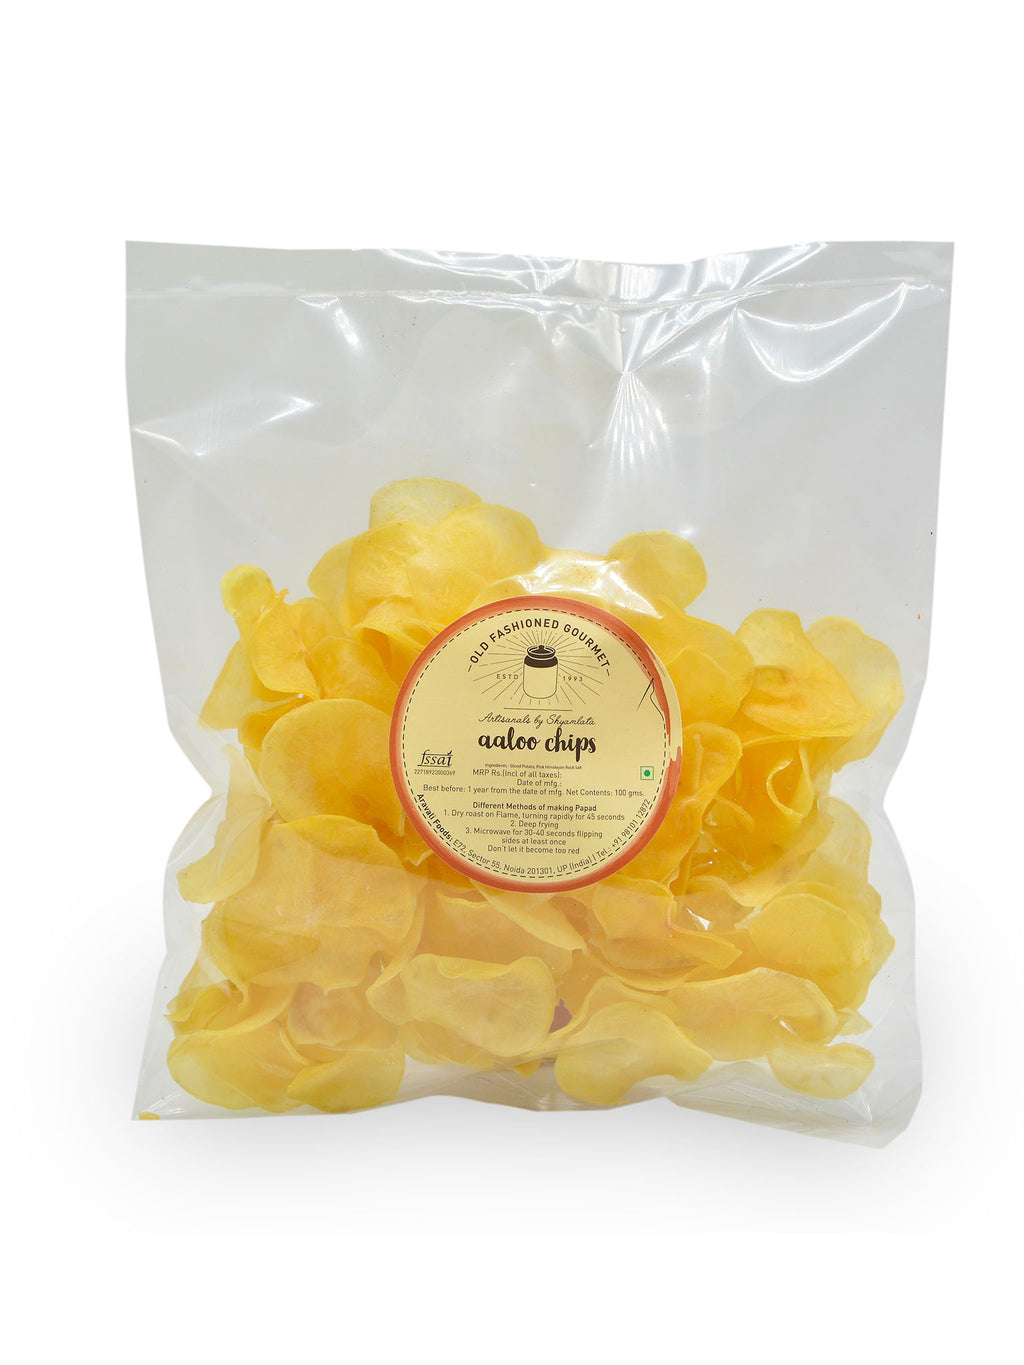 Chemical free-Aaloo chips